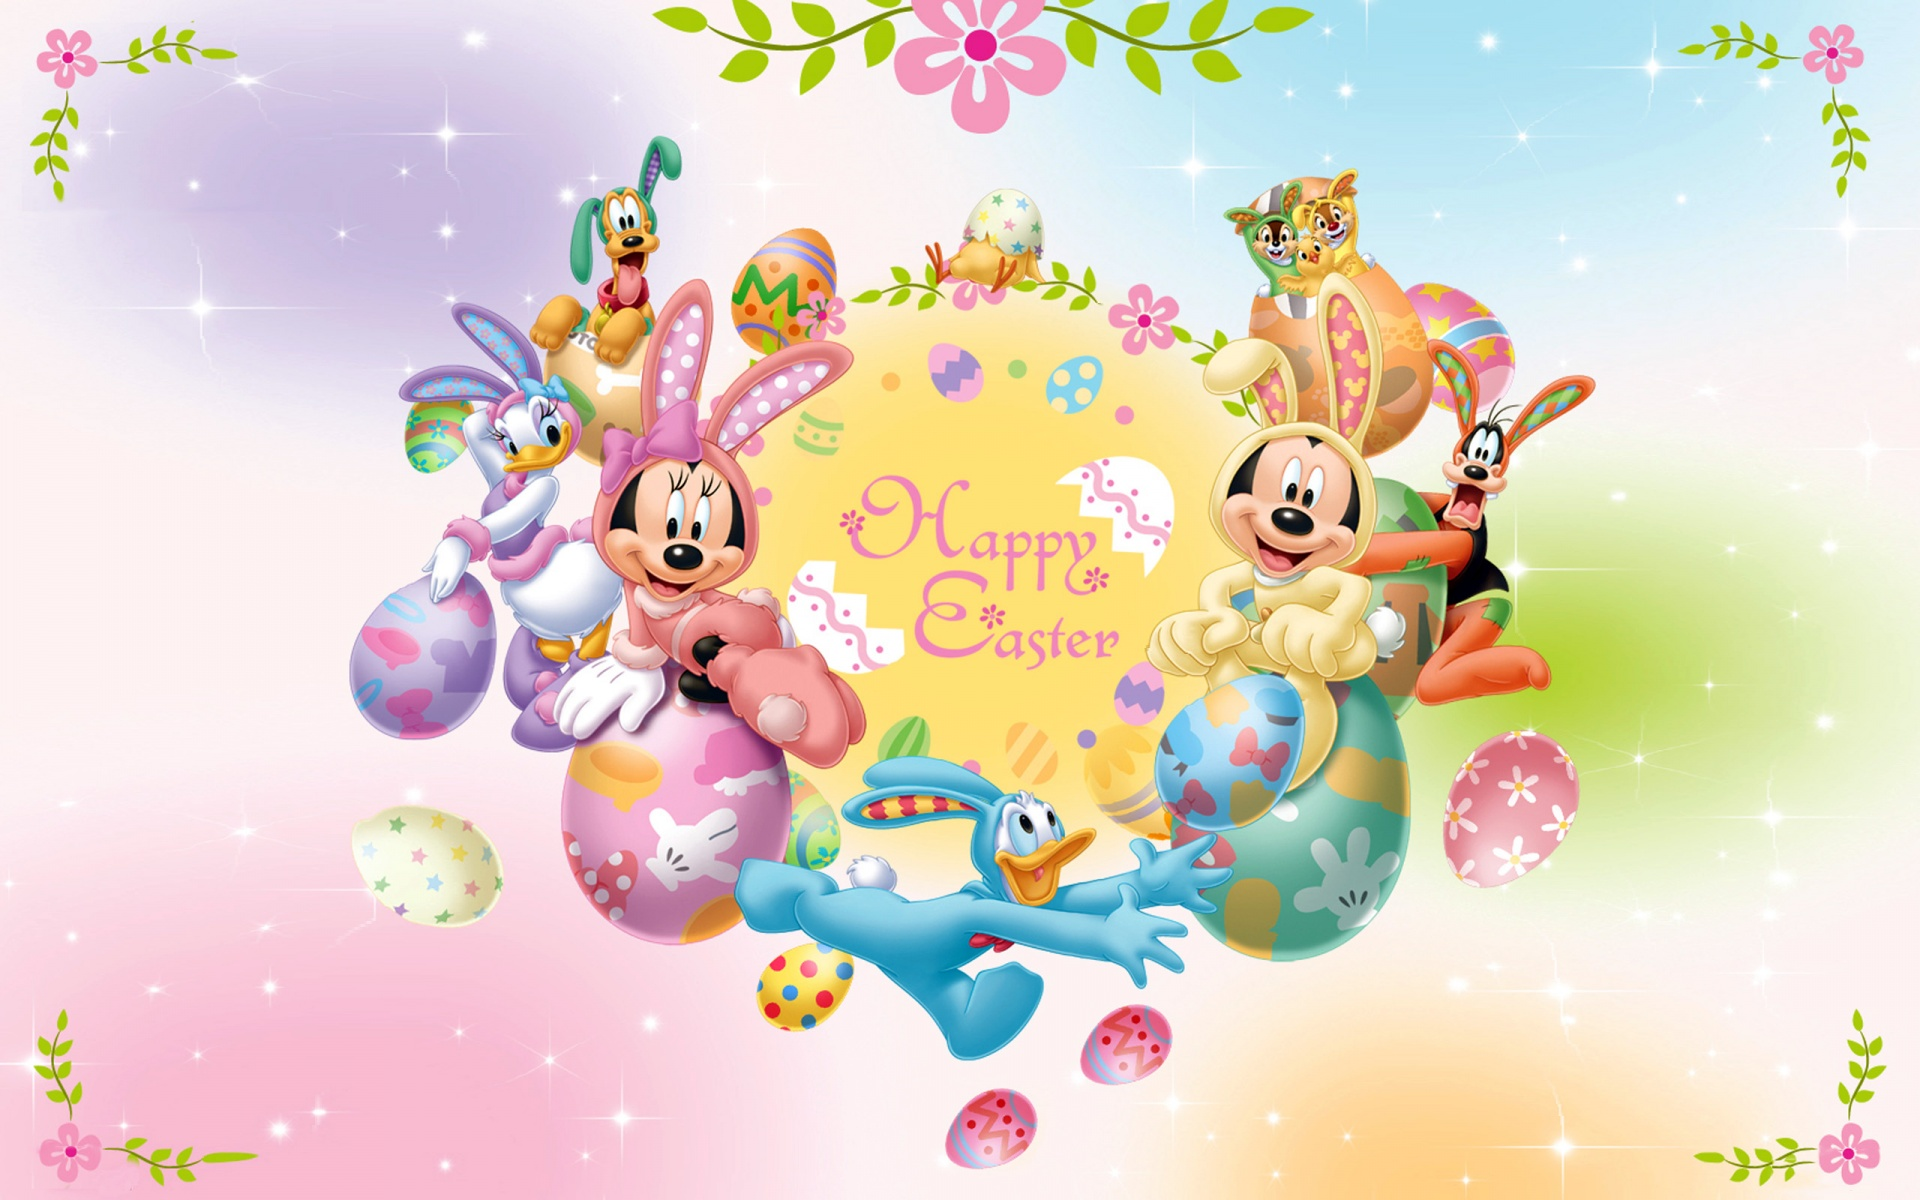 Happy Easter Images Easter Sunday Gif Pics Photos For Whatsapp